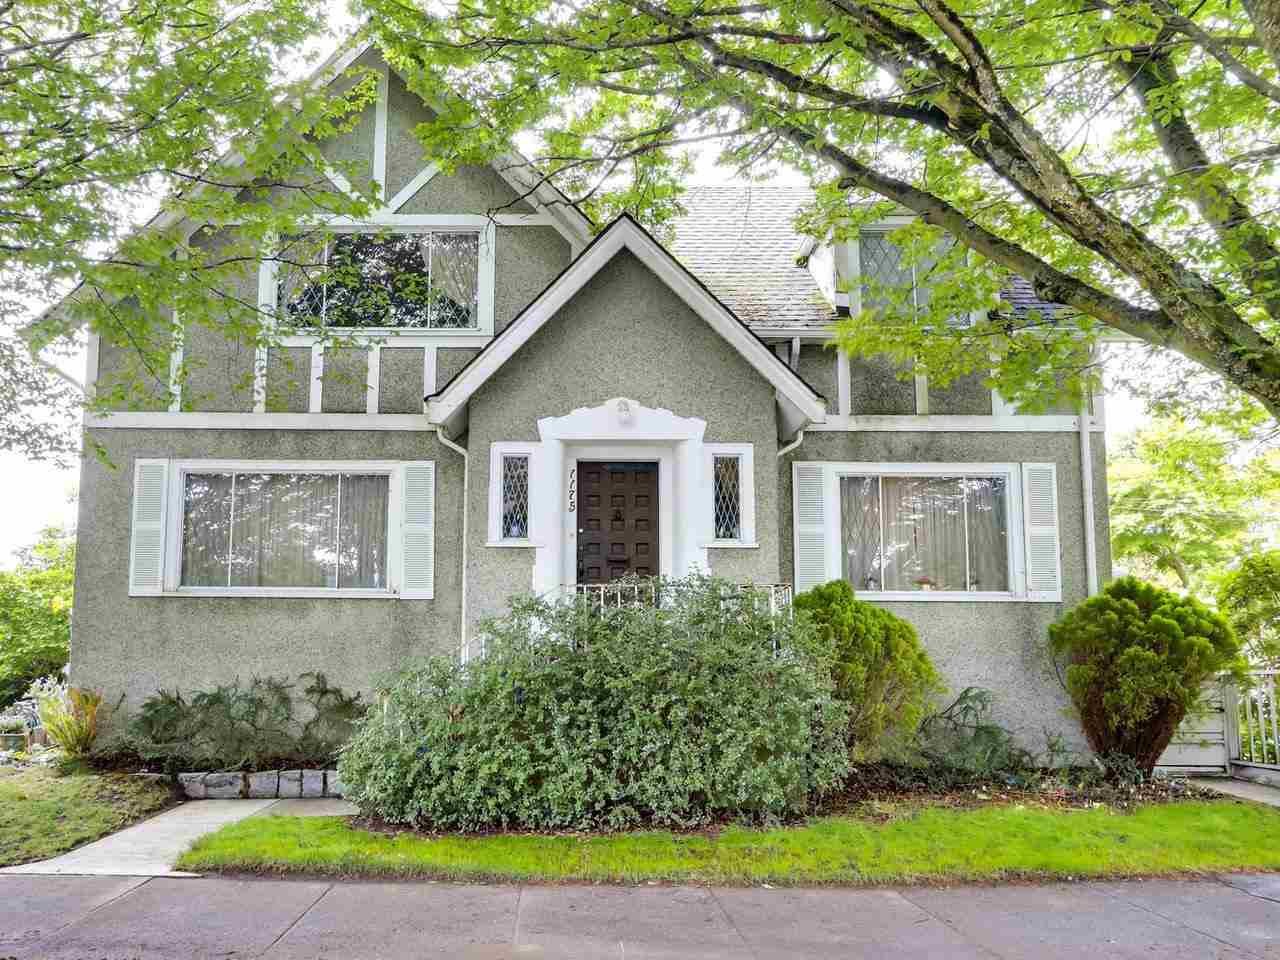 1175 CYPRESS STREET - Kitsilano House/Single Family for sale, 5 Bedrooms (R2592260)